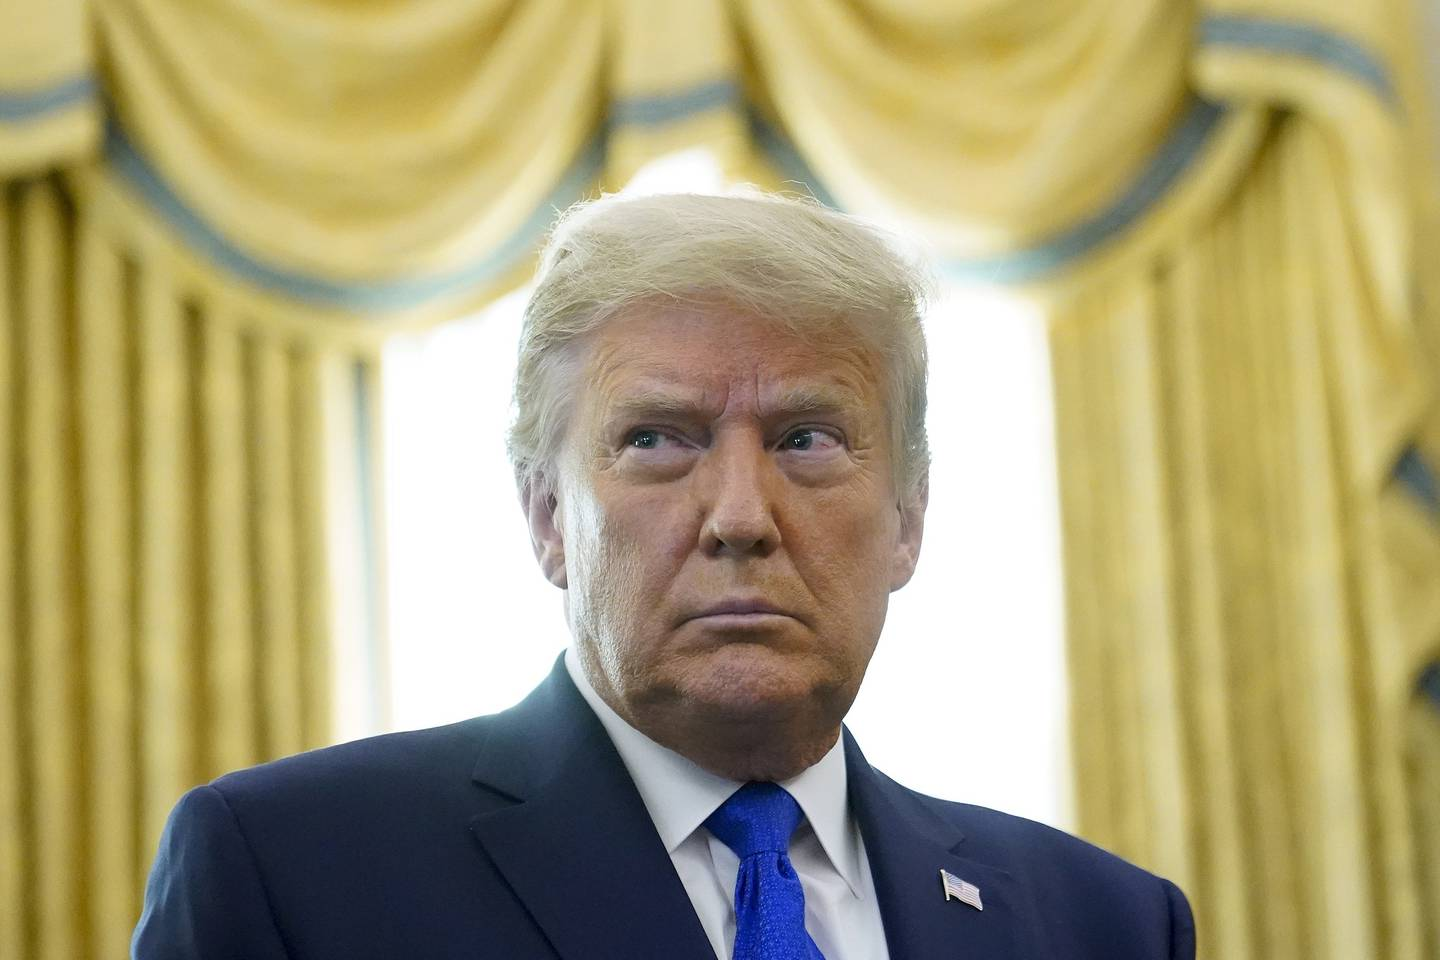 In this Dec. 7, 2020, photo,President Donald Trump in the Oval Office of the White House in Washington.